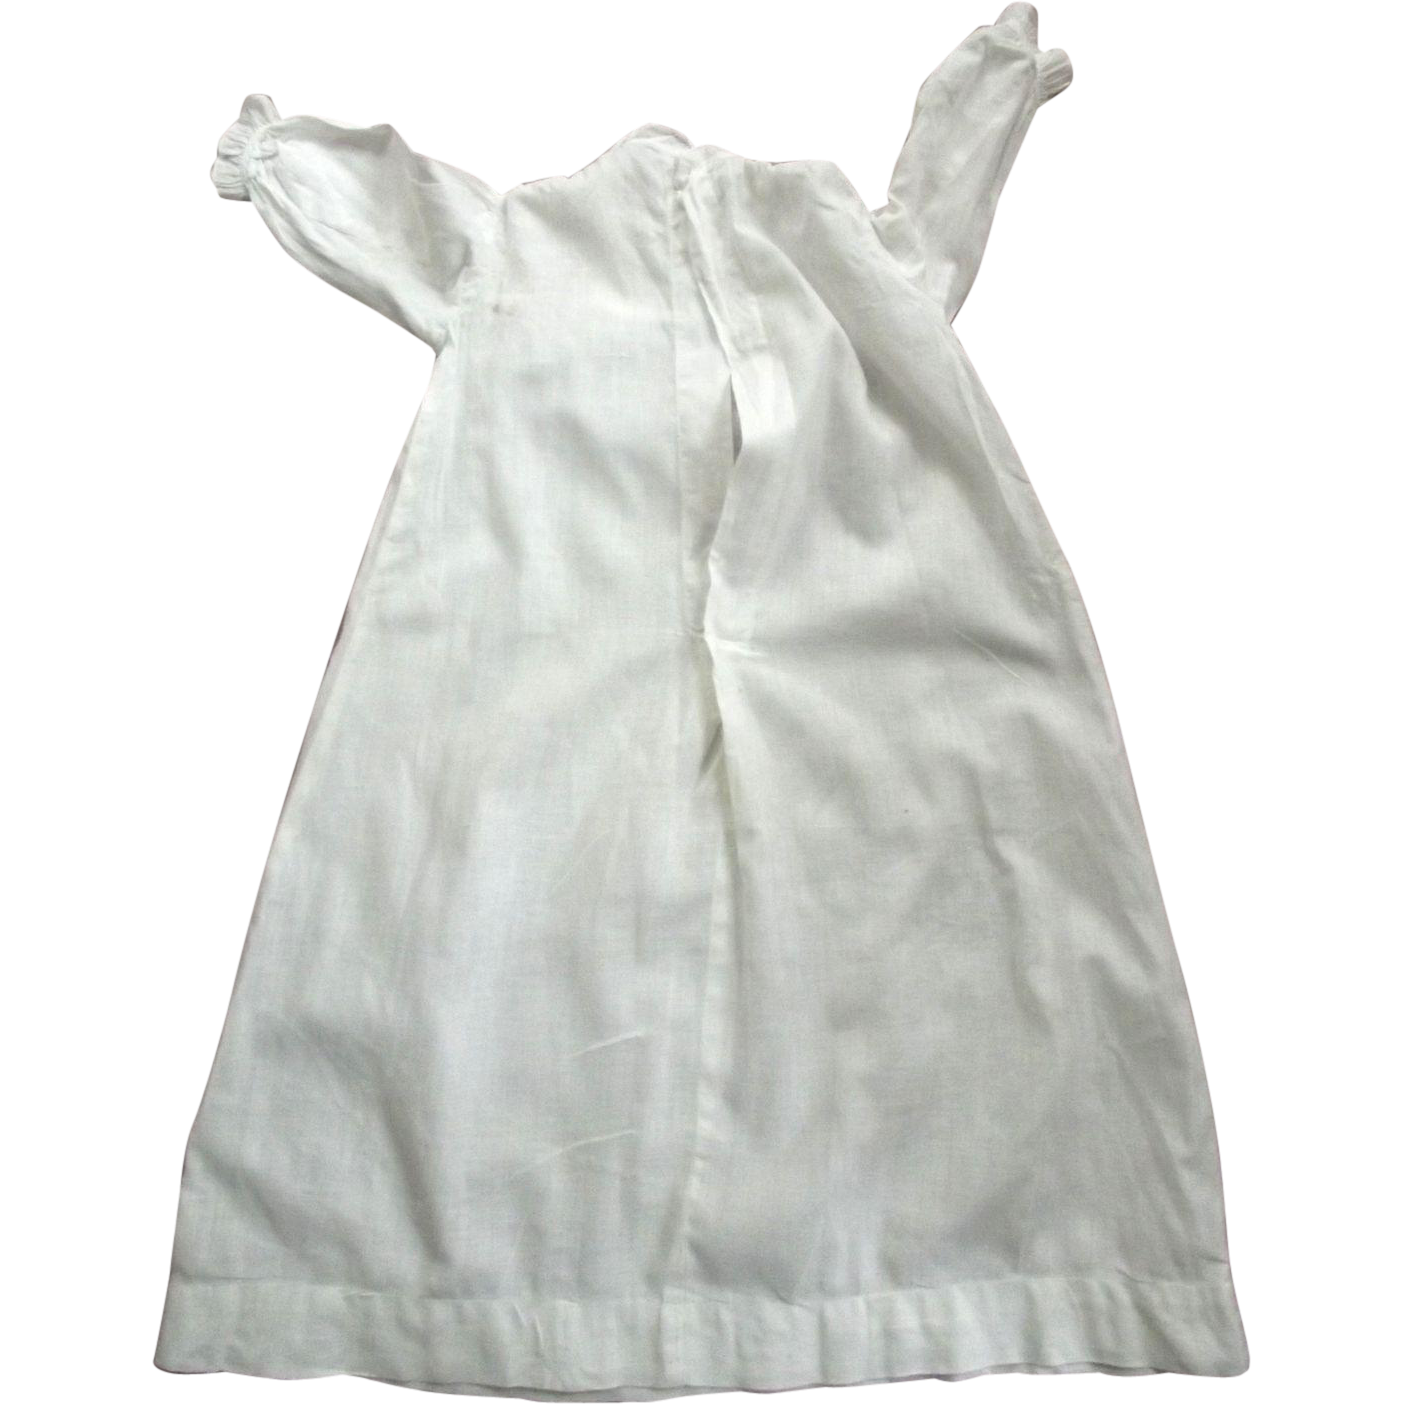 Linen Baby Dress With Repairs Good For Large Baby Doll